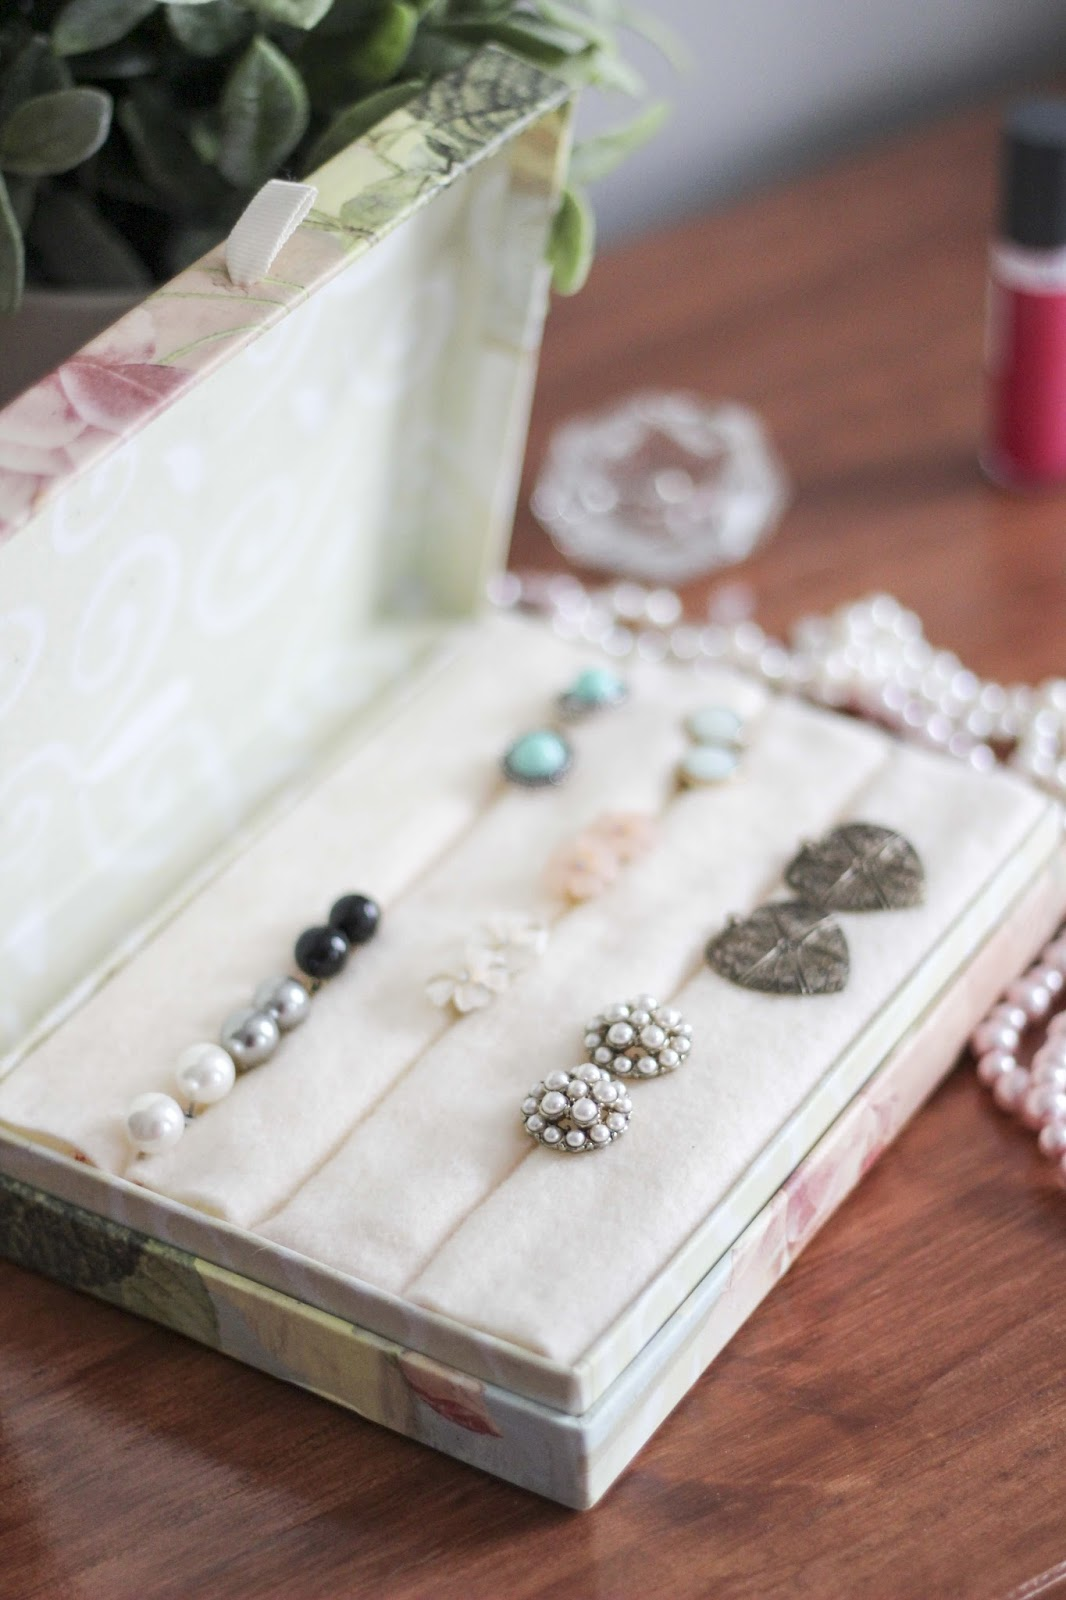 DIY Earring & Jewelry Box | Confetti Dots Blog | http://www.confettidots.blogspot.com